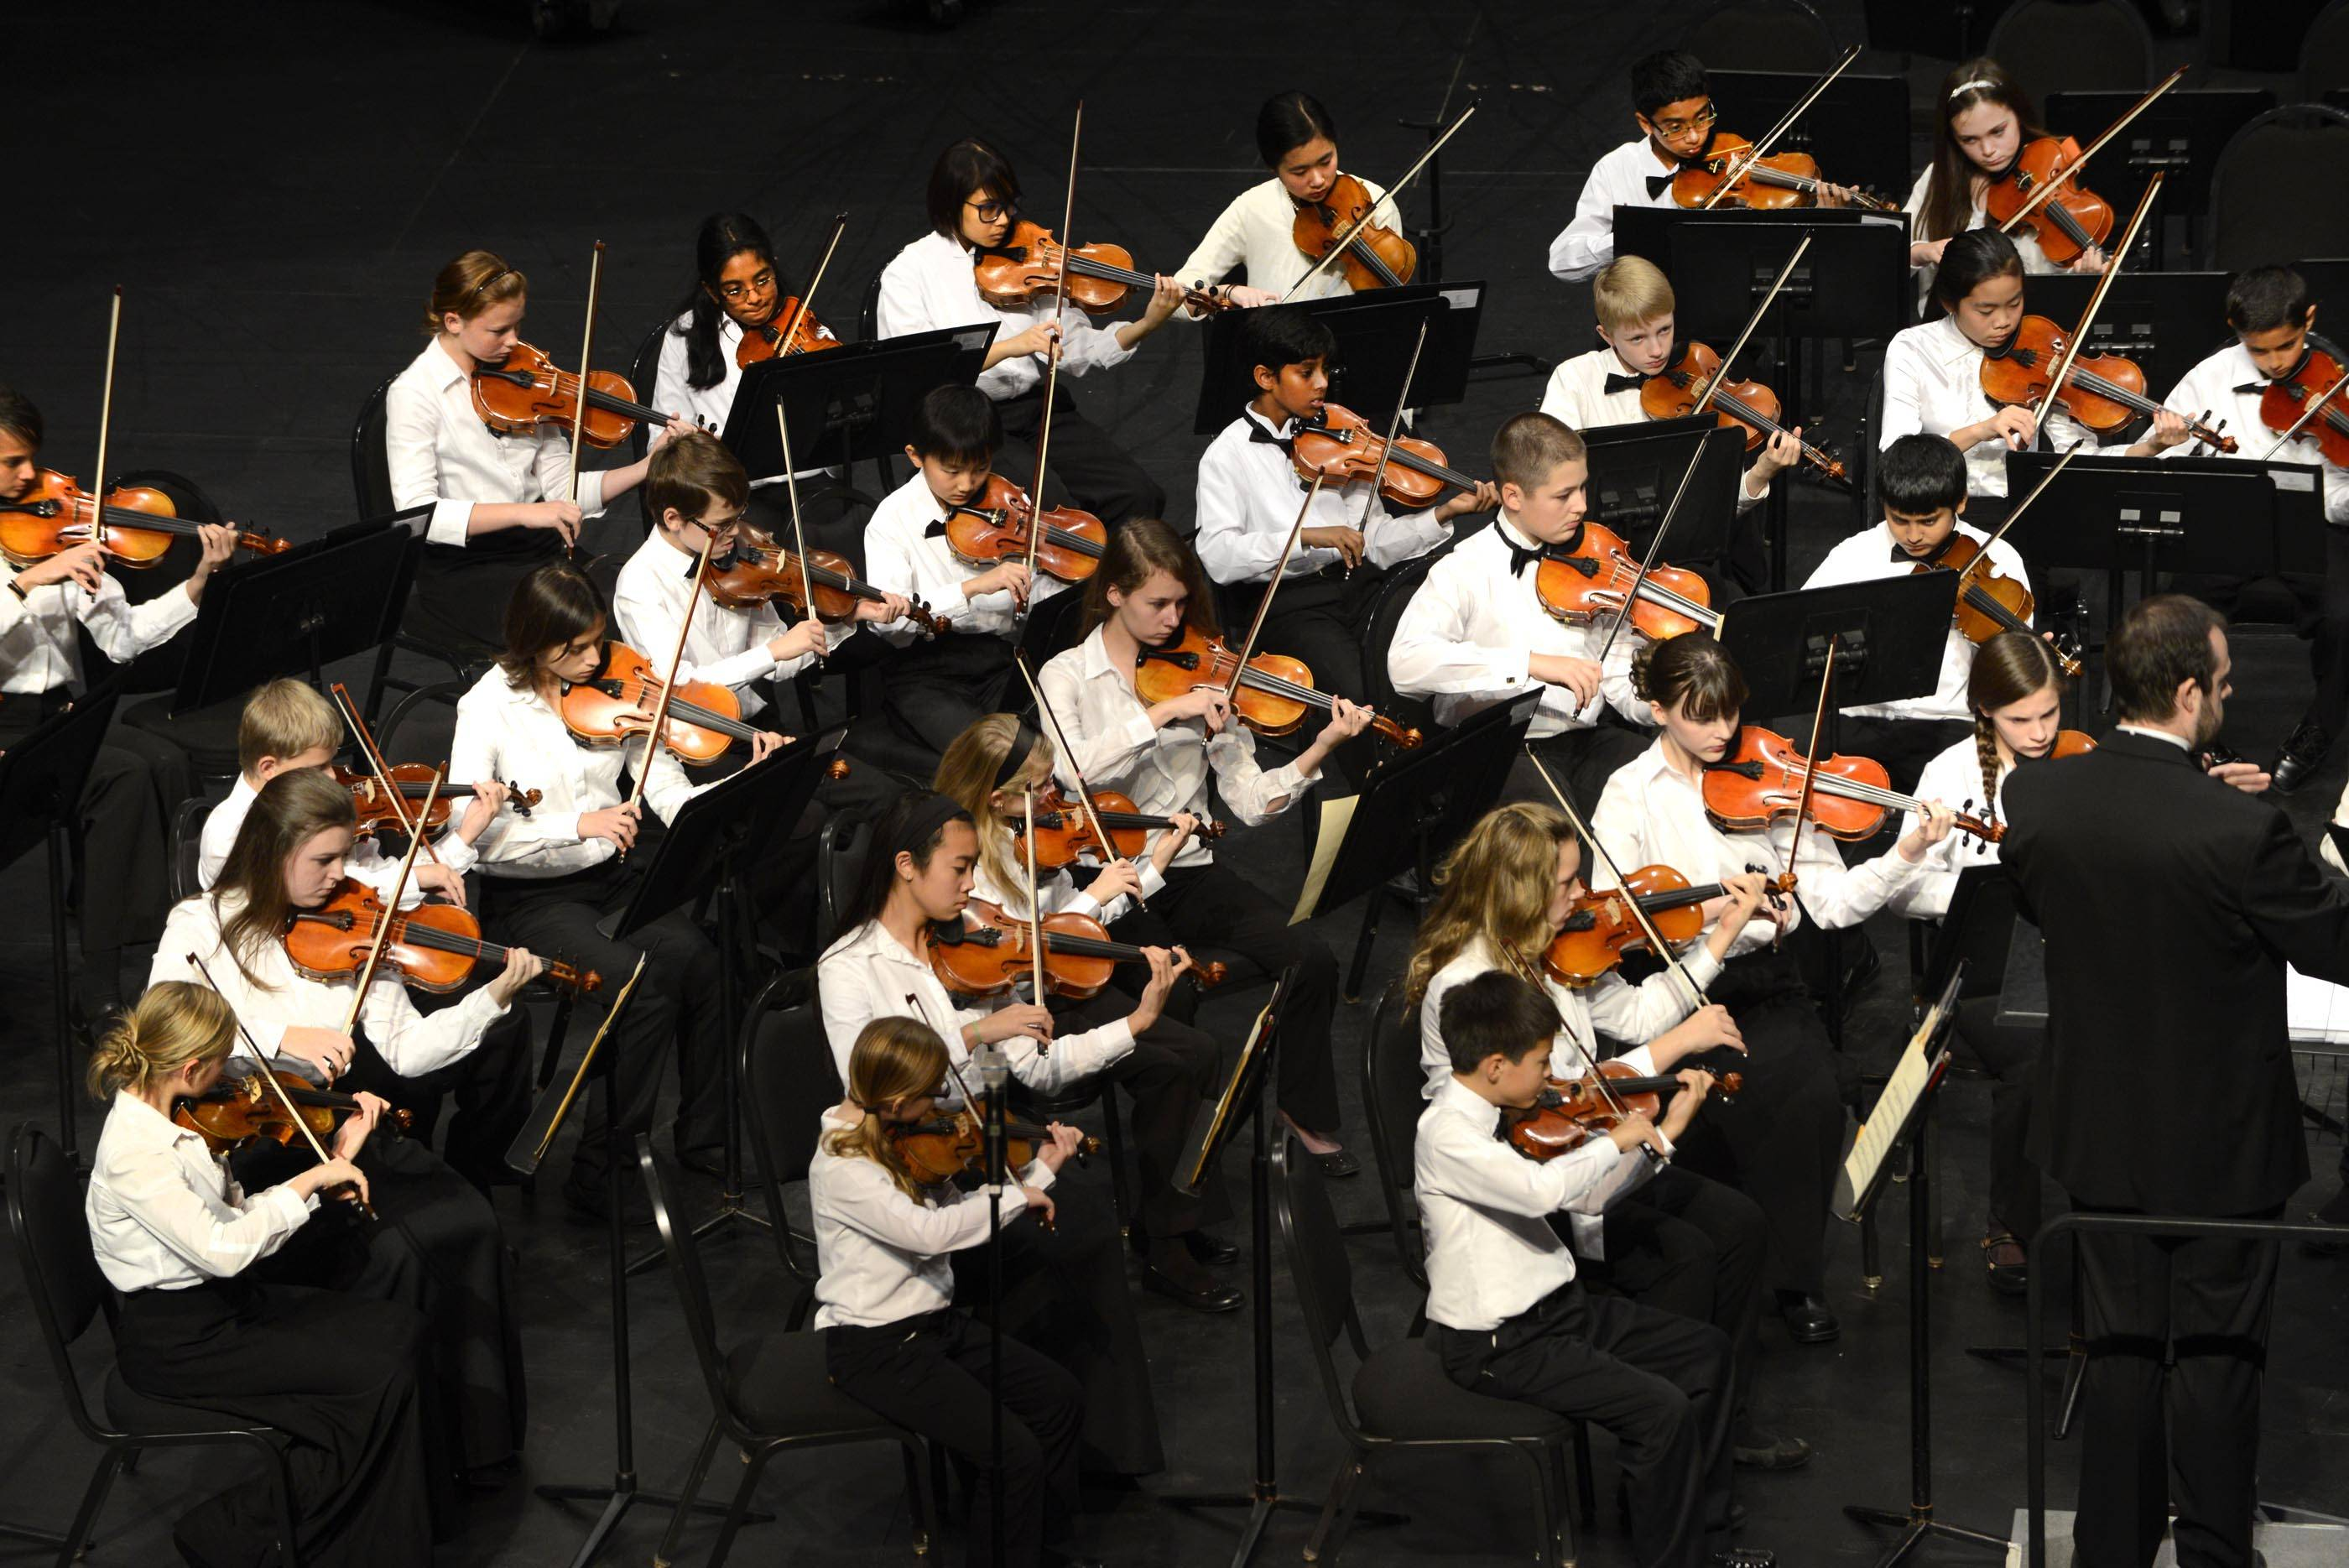 The Elgin Youth Symphony Orchestra will close its 38th concert season Sunday, May 4, with three concerts at the Blizzard Theatre at Elgin Community College.